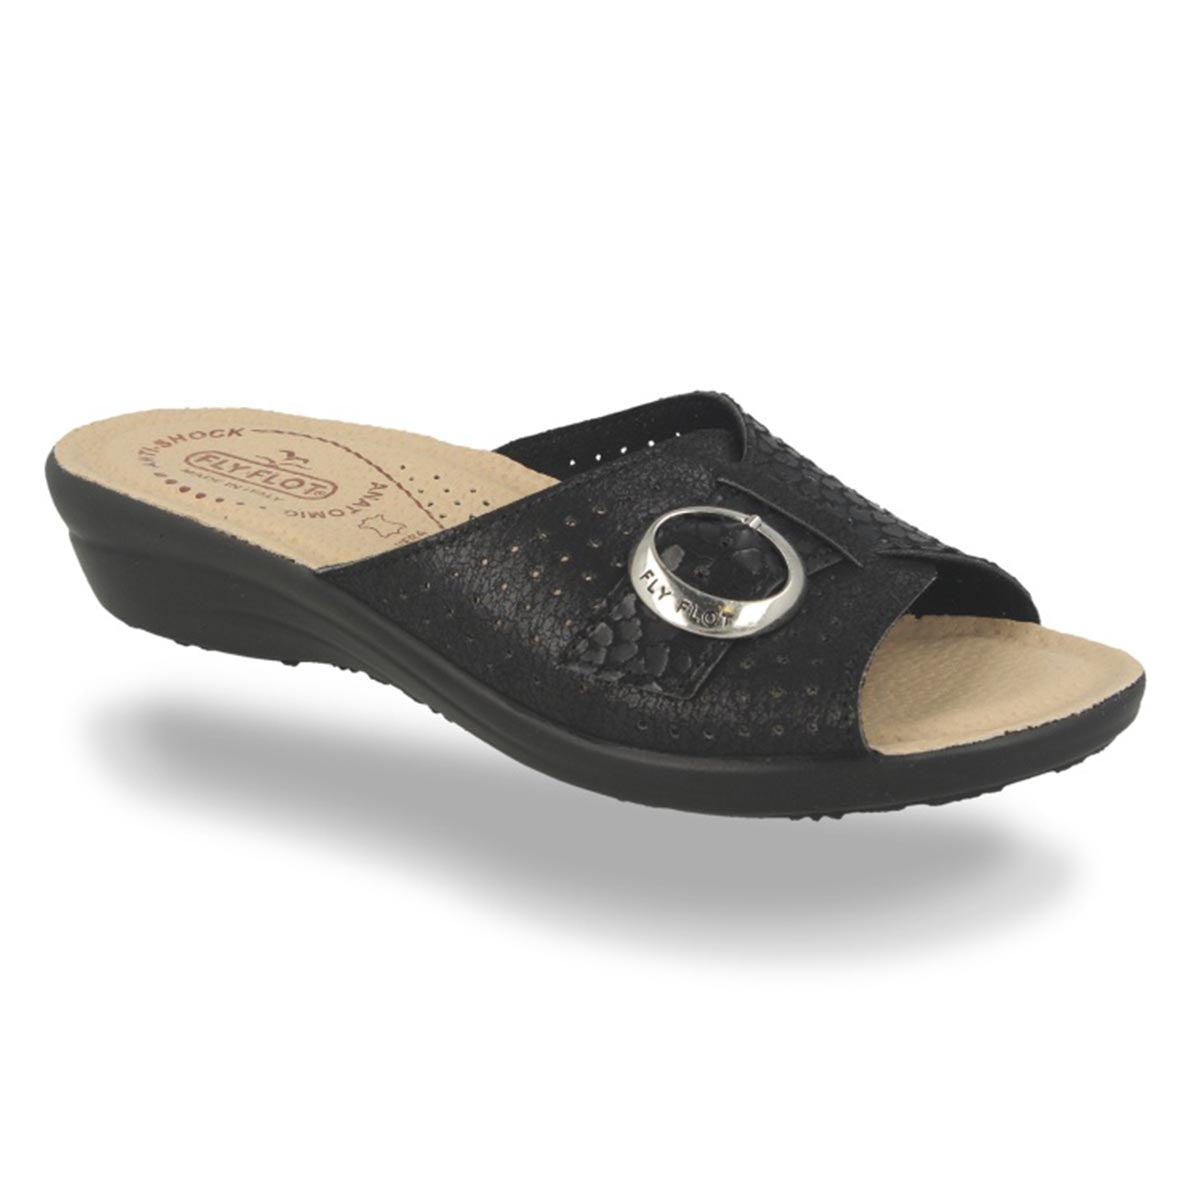 Cloth Woman Slipper Black (T4a522b)